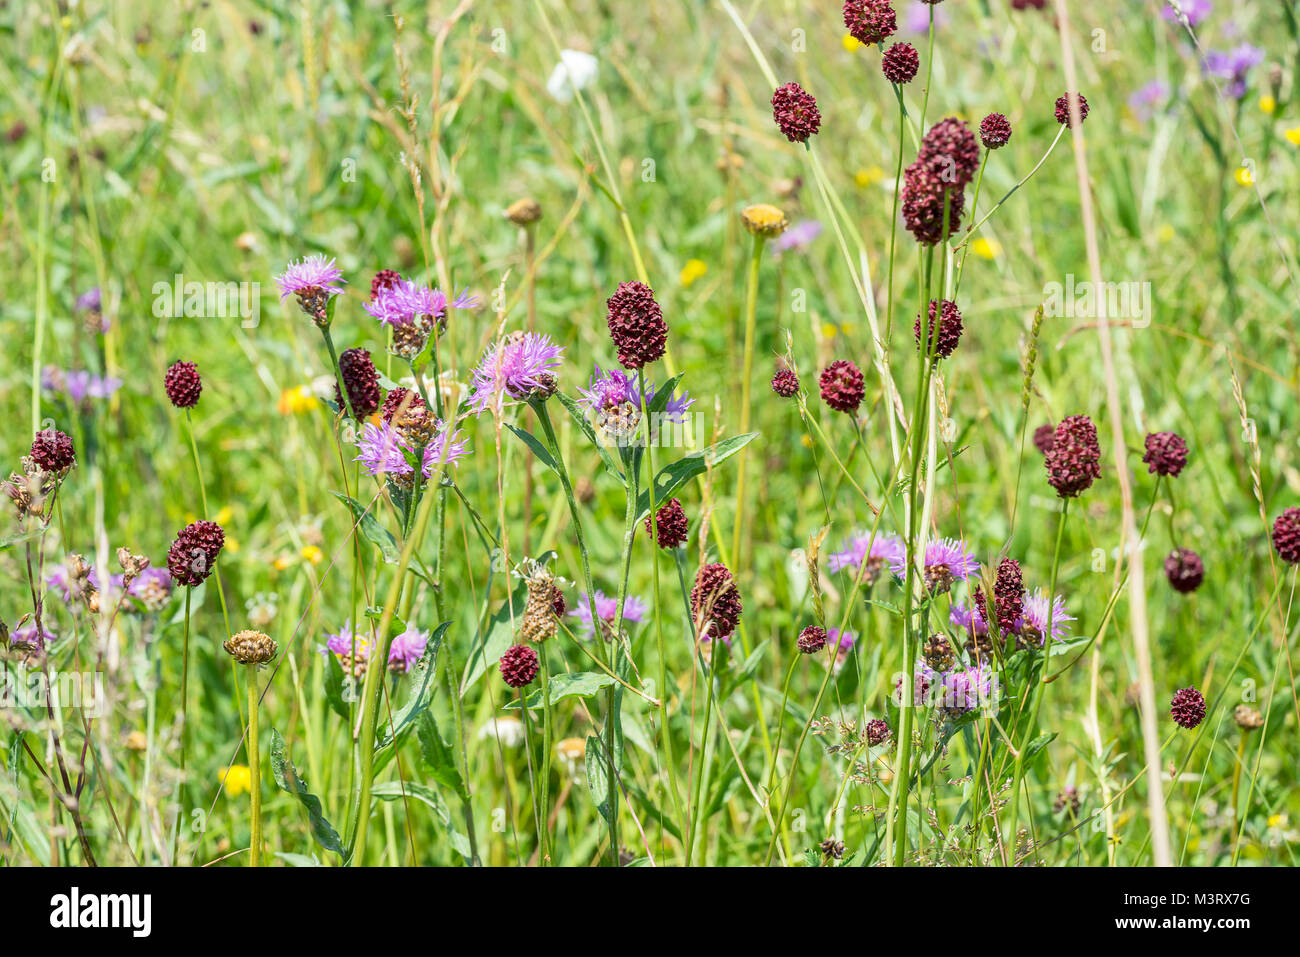 sunny colorful closeup shot of dense wildflower vegetation at spring time Stock Photo